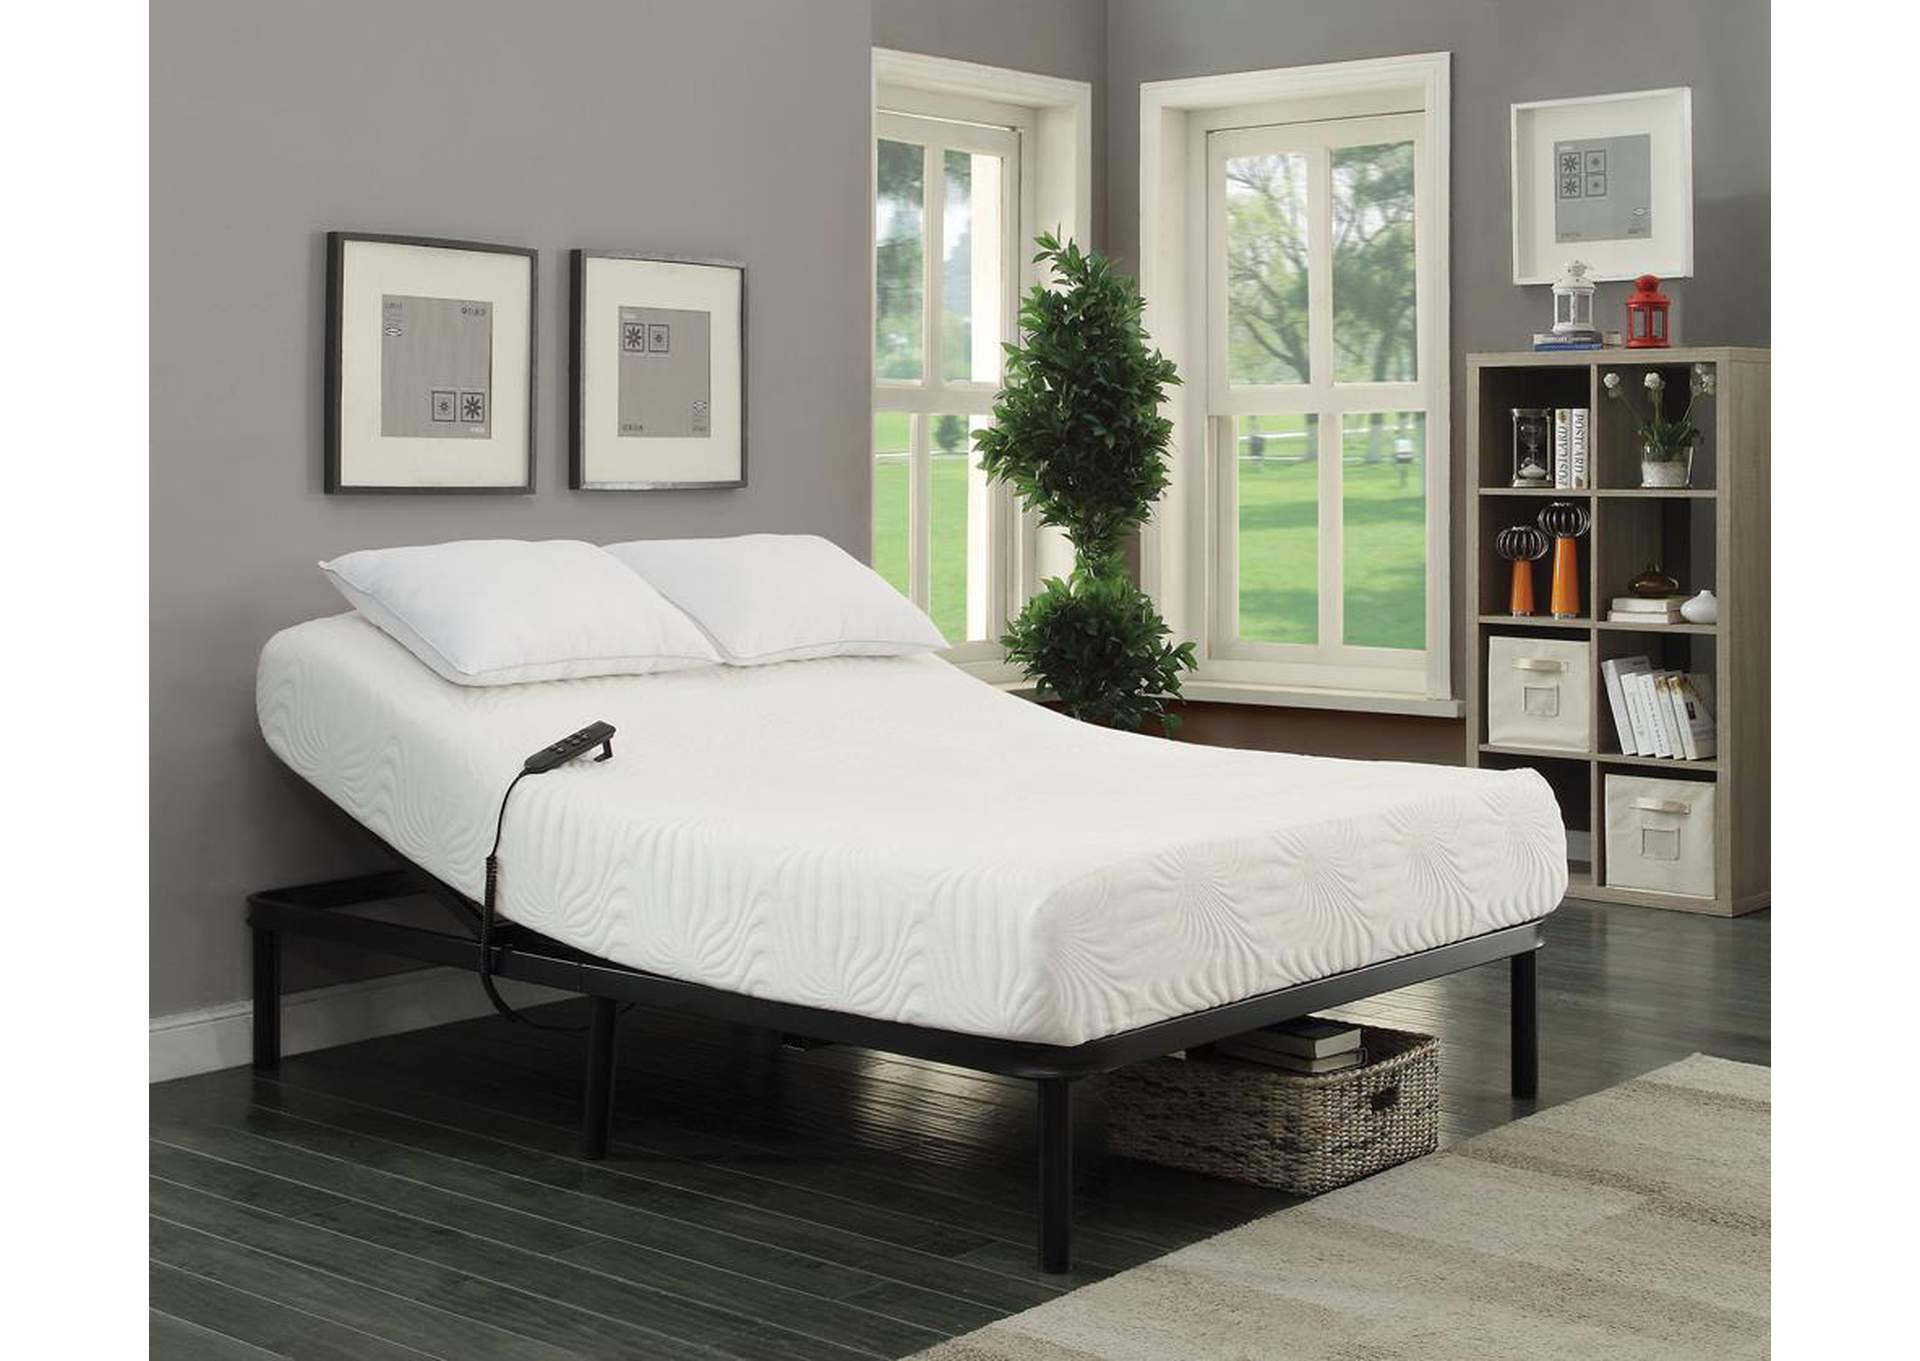 Stanhope Black Queen Adjustable Bed,Coaster Furniture